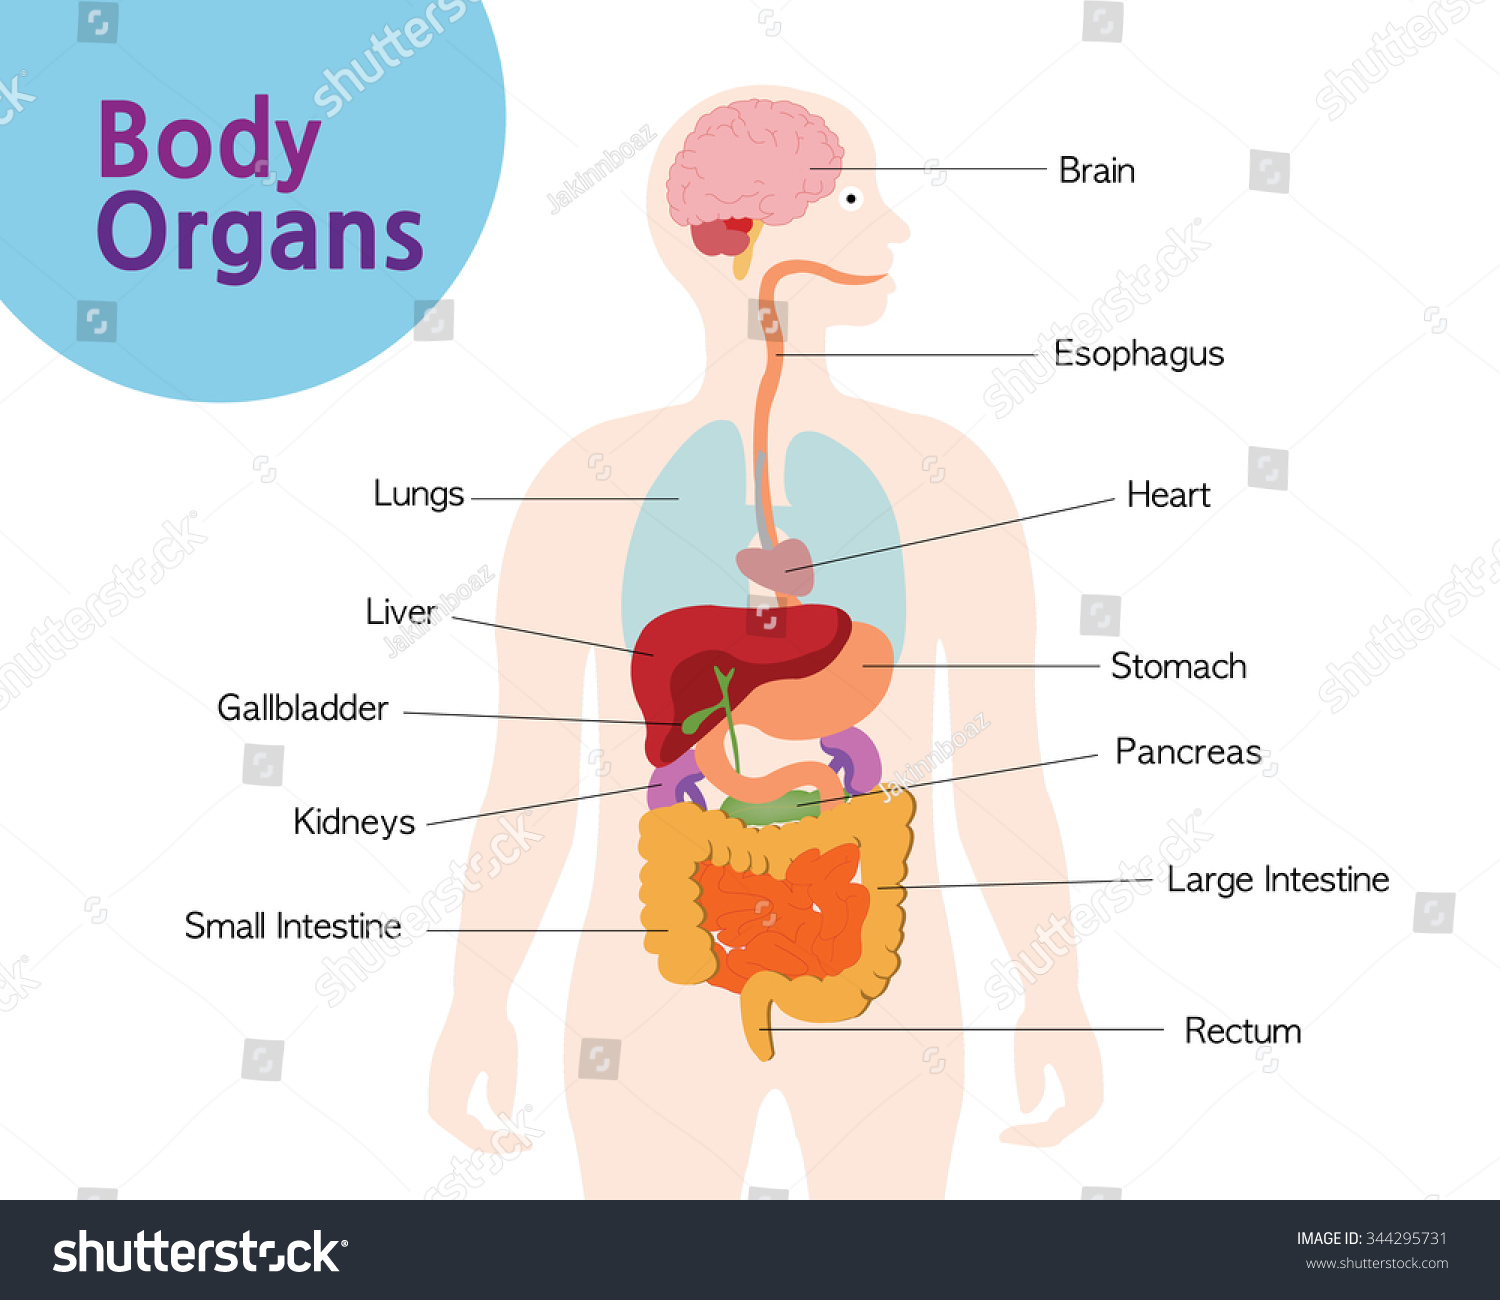 Picture of the organs in the body